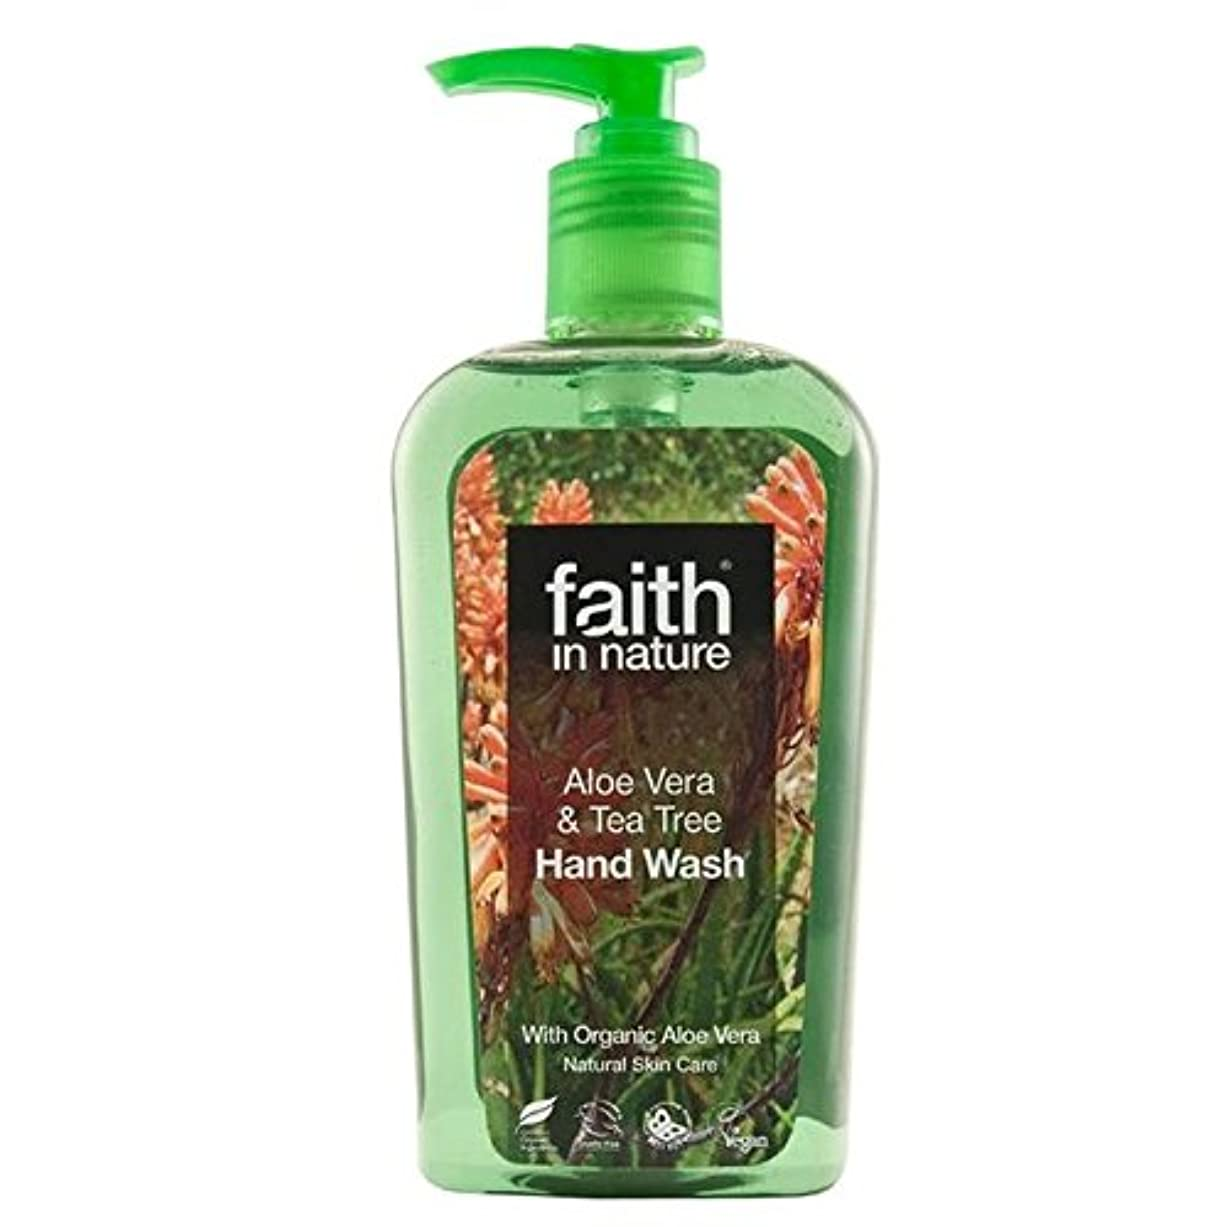 Faith in Nature Aloe Vera & Tea Tree Handwash 300ml (Pack of 4) - (Faith In Nature) 自然のアロエベラ&ティーツリー手洗いの300ミリリットル...